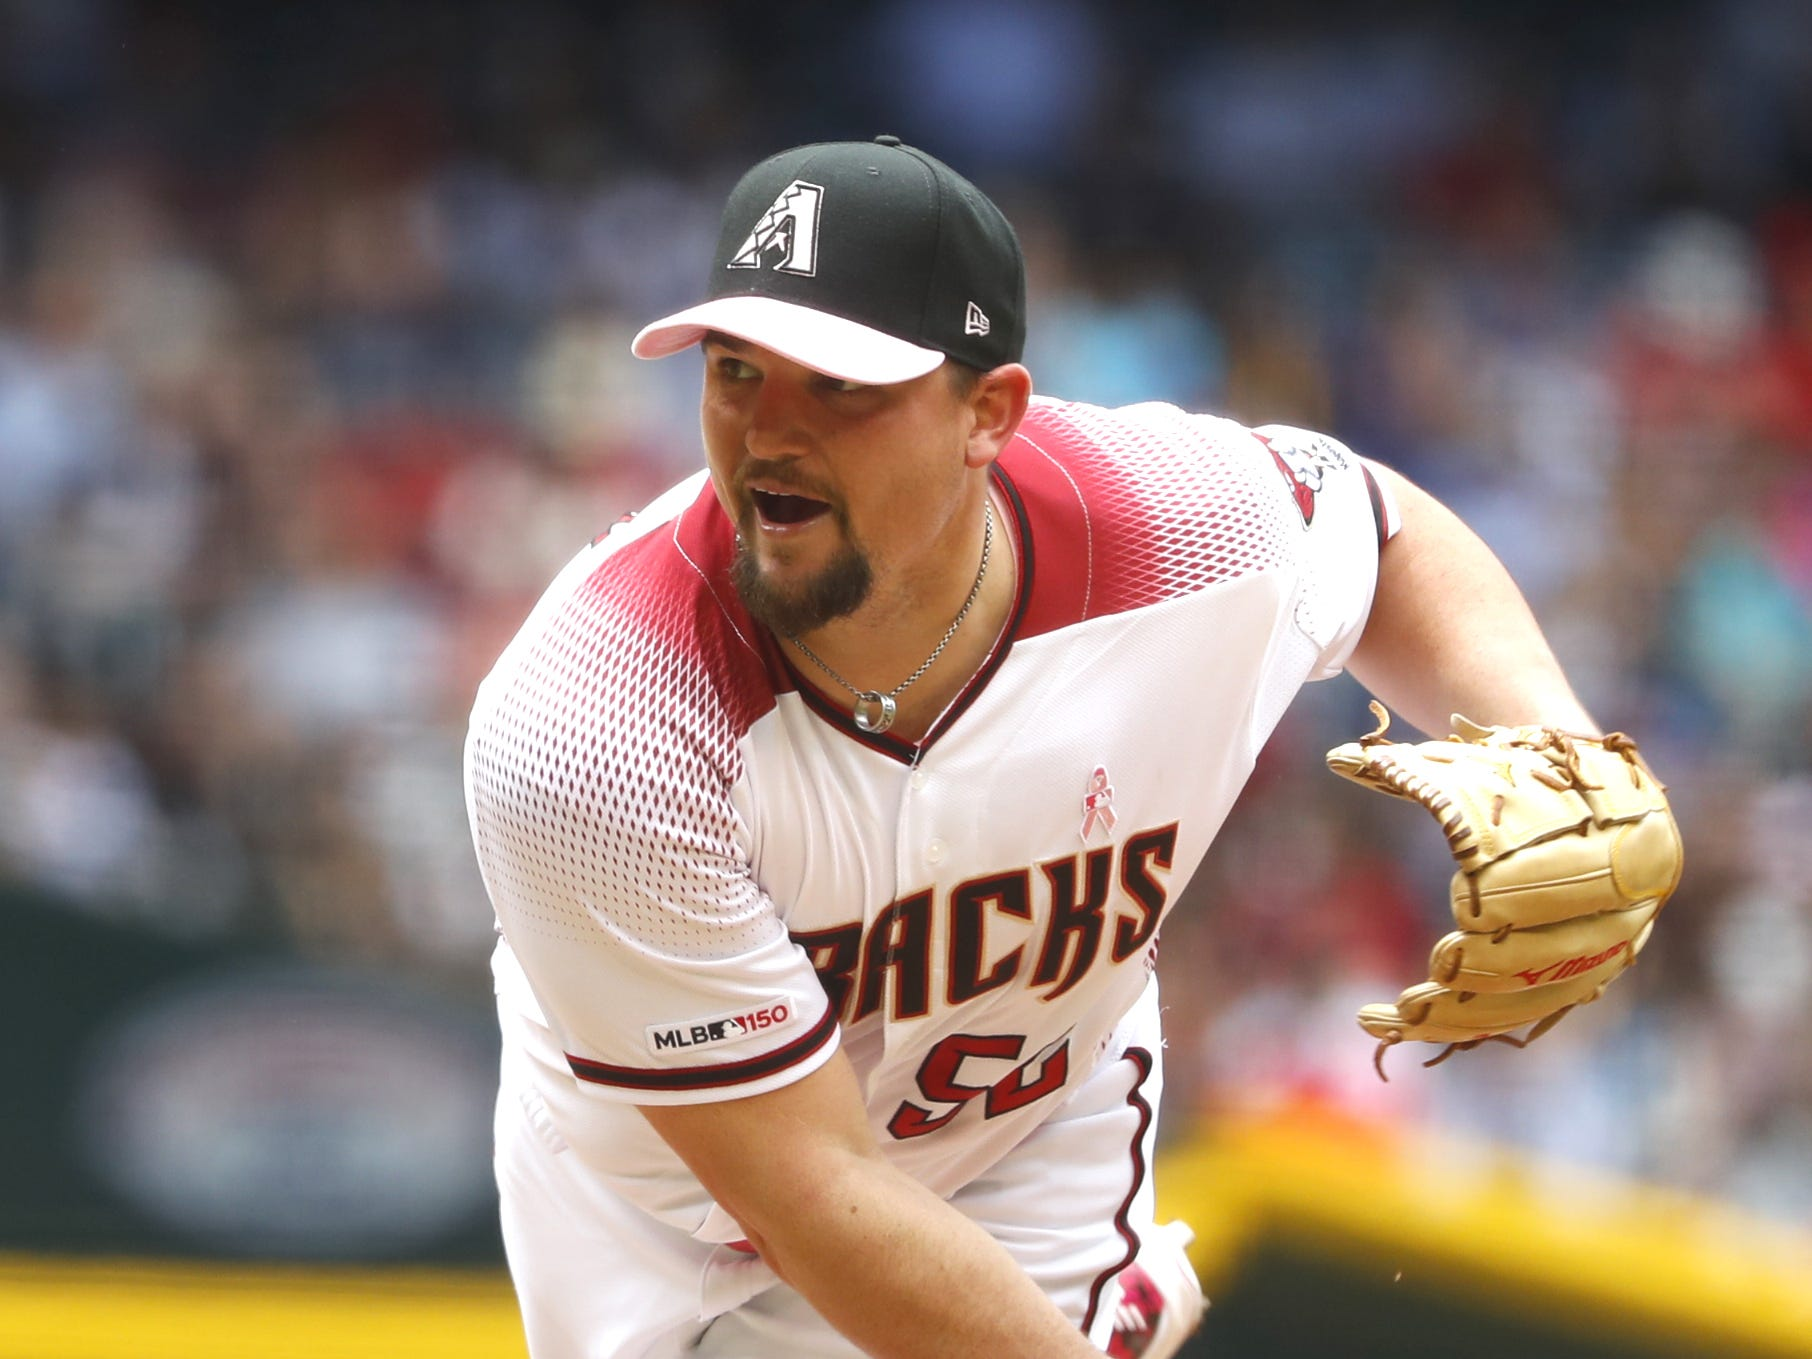 Diamondbacks' Zack Godley (52) pitches against the Braves during the first inning at Chase Field in Phoenix, Ariz. on May 12, 2019.